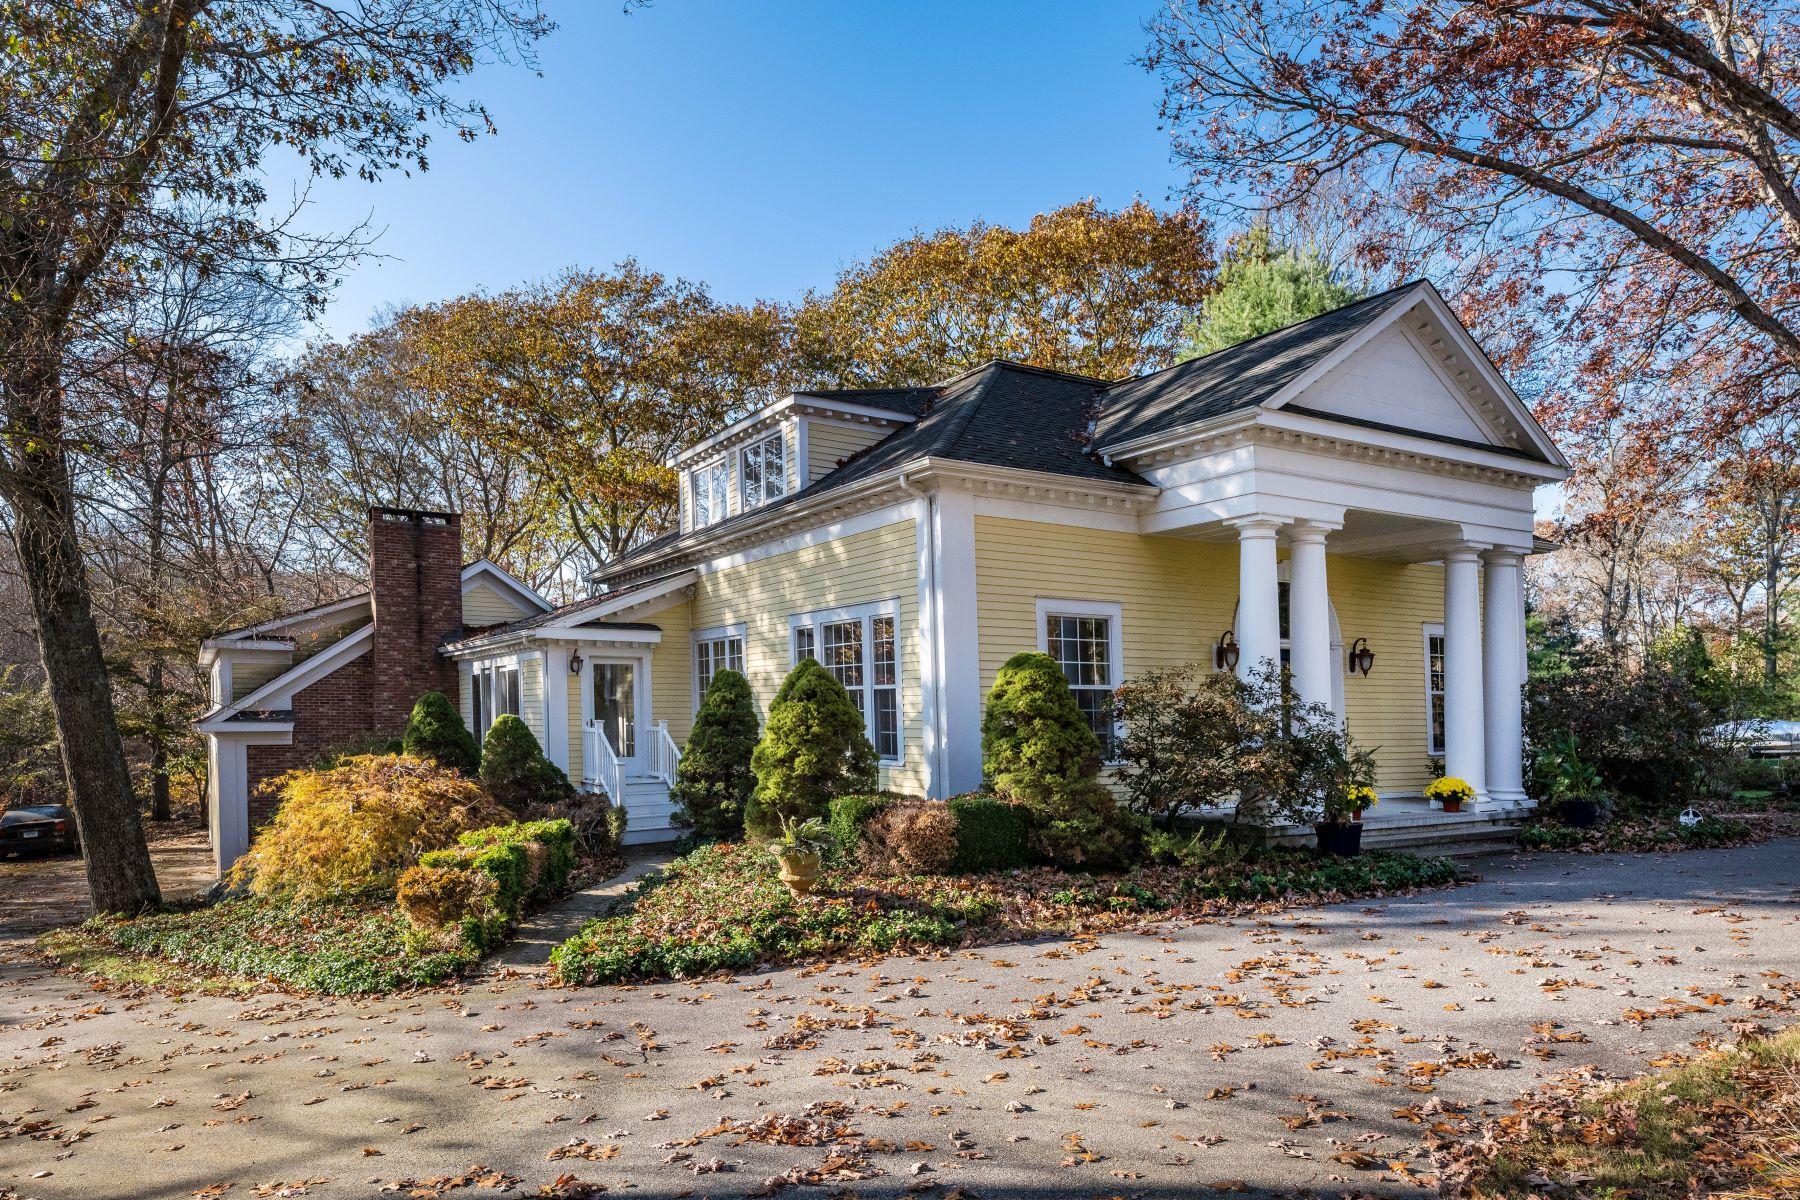 Single Family Homes for Sale at Stunning & Stately Georgian Colonial 2 Millers Way Old Lyme, Connecticut 06371 United States